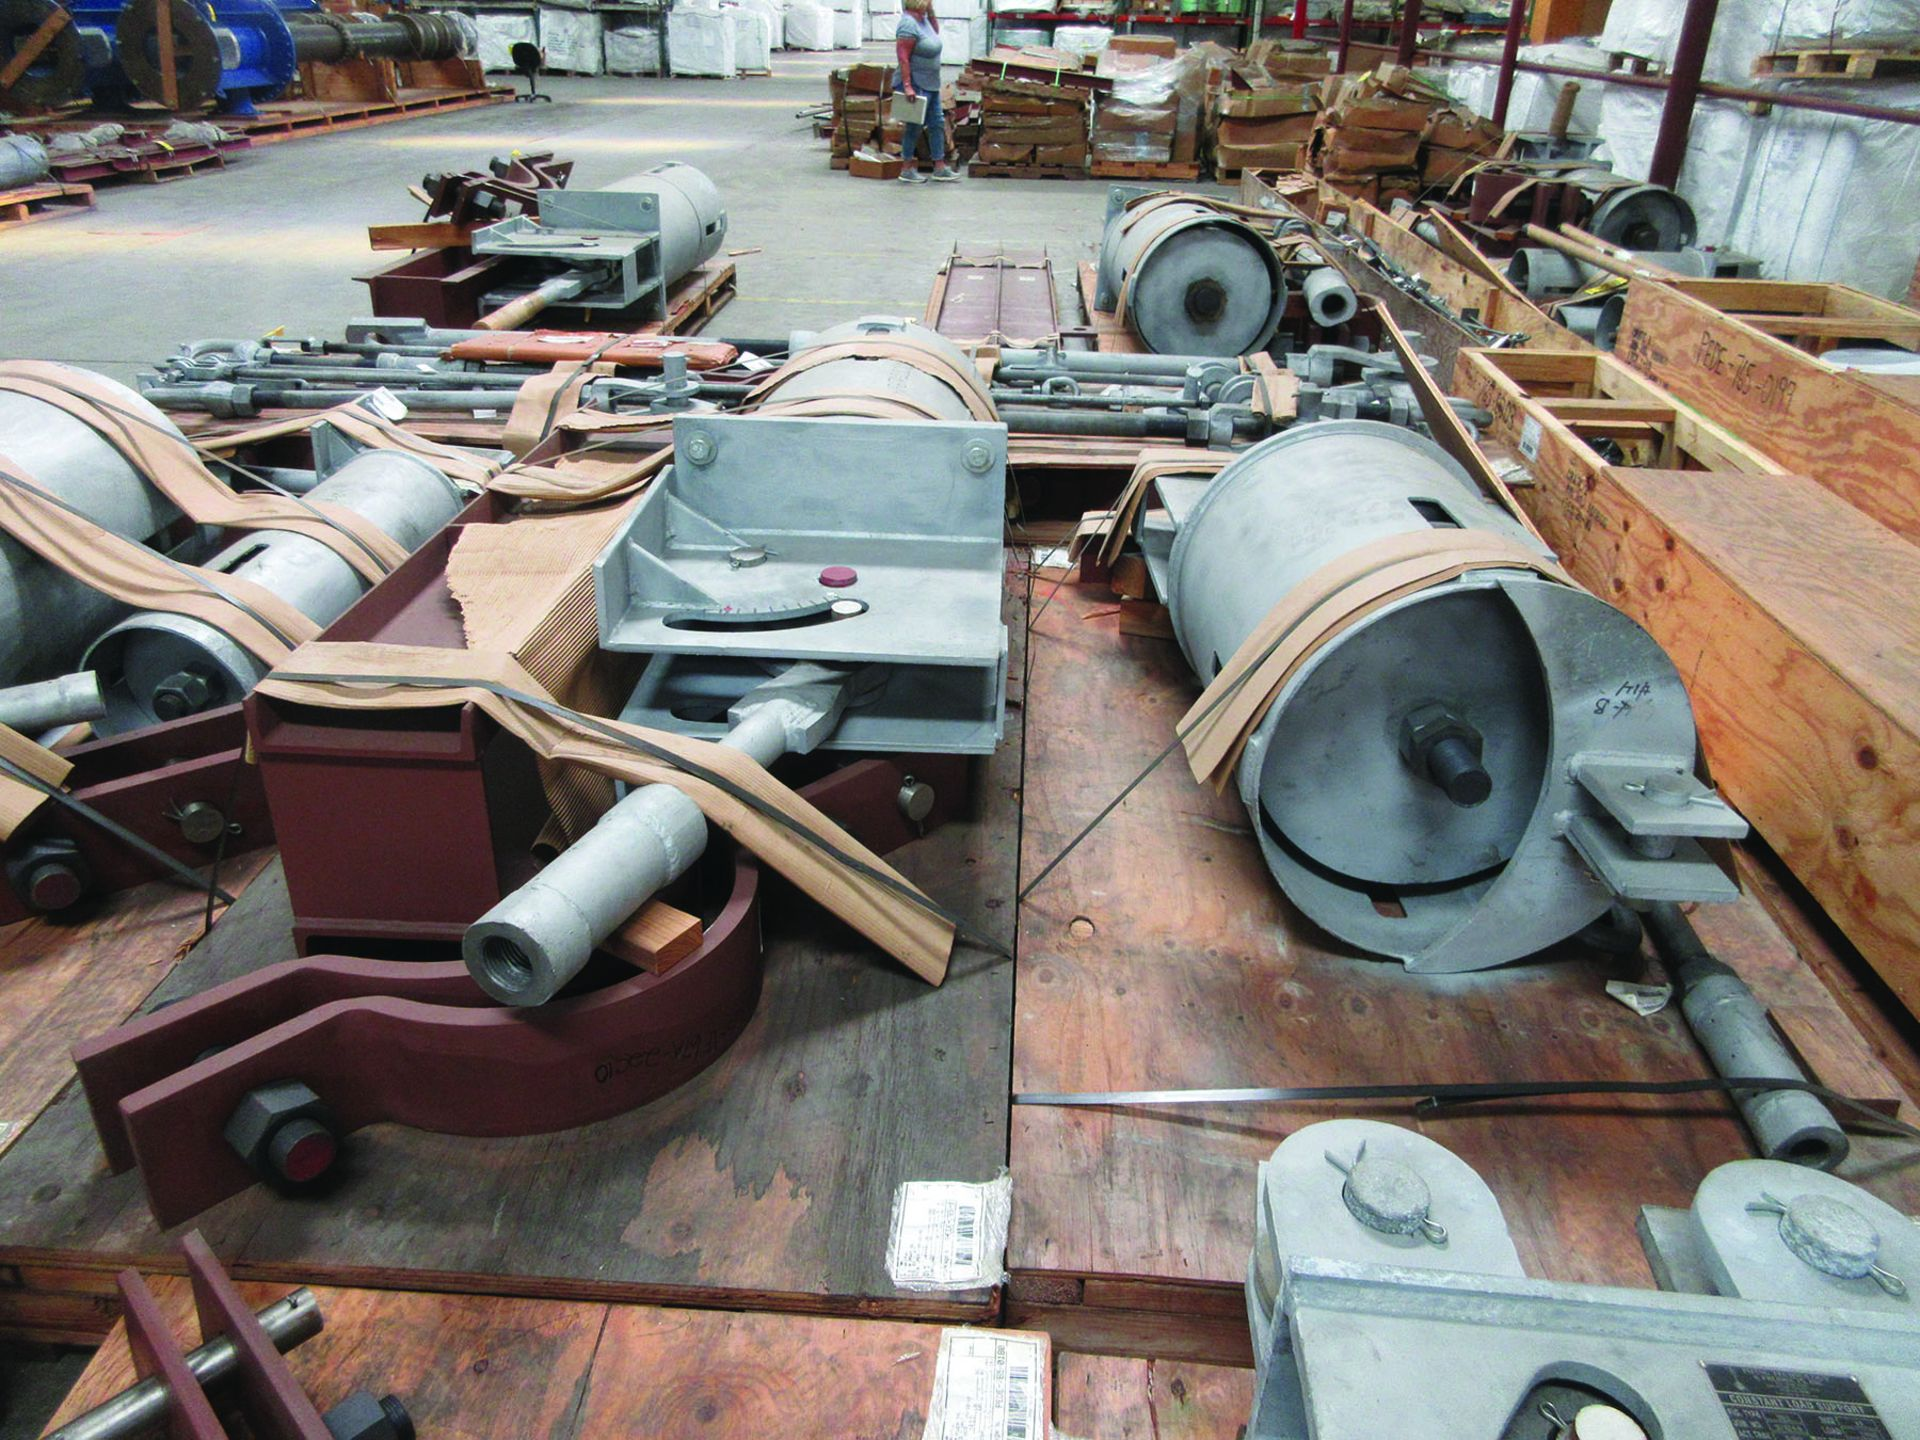 LARGE LOT OF STRUCTURAL STEEL & SPRING CANS, ANGLE IRON, PLATE BRACKETS, BRACING, GRID C5 - Image 10 of 21